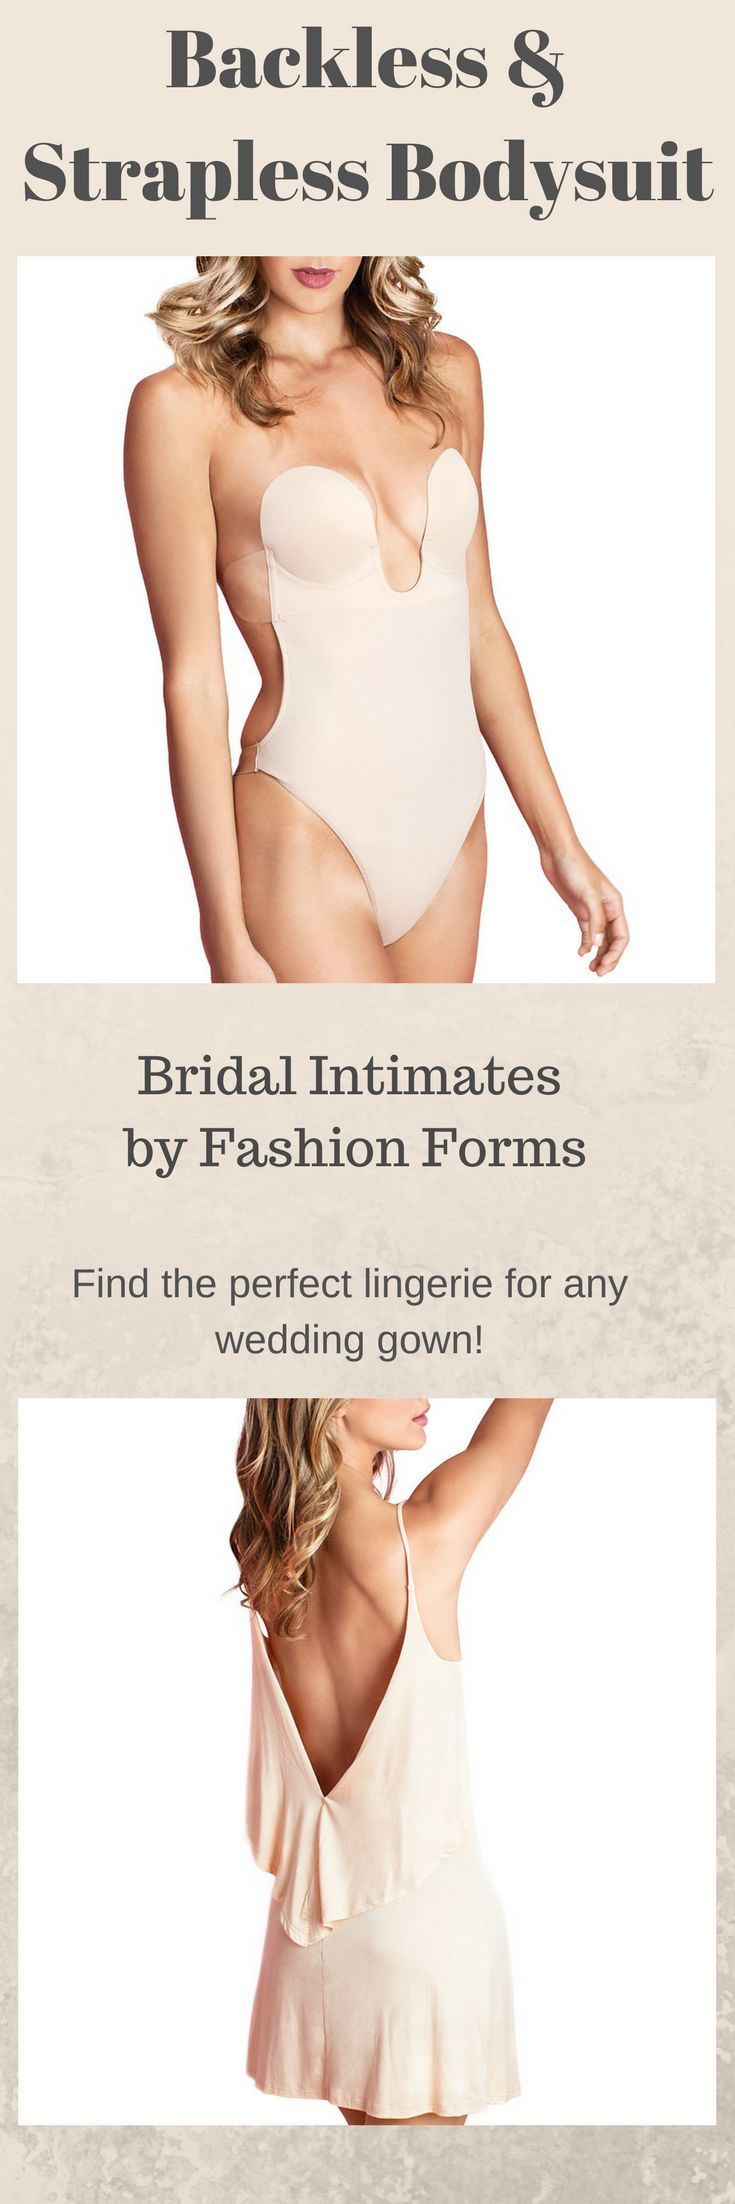 If you've tried on wedding gowns you've probably wondered if designers even considered what lingerie or would work underneath. Fashion Forms has many innovative bras, underwear, and bodysuits to choose from AND really great prices! Check it out and I'm sure you will find the right pieces for under your wedding gown! | wedding day lingerie | promotion | #weddingdresses